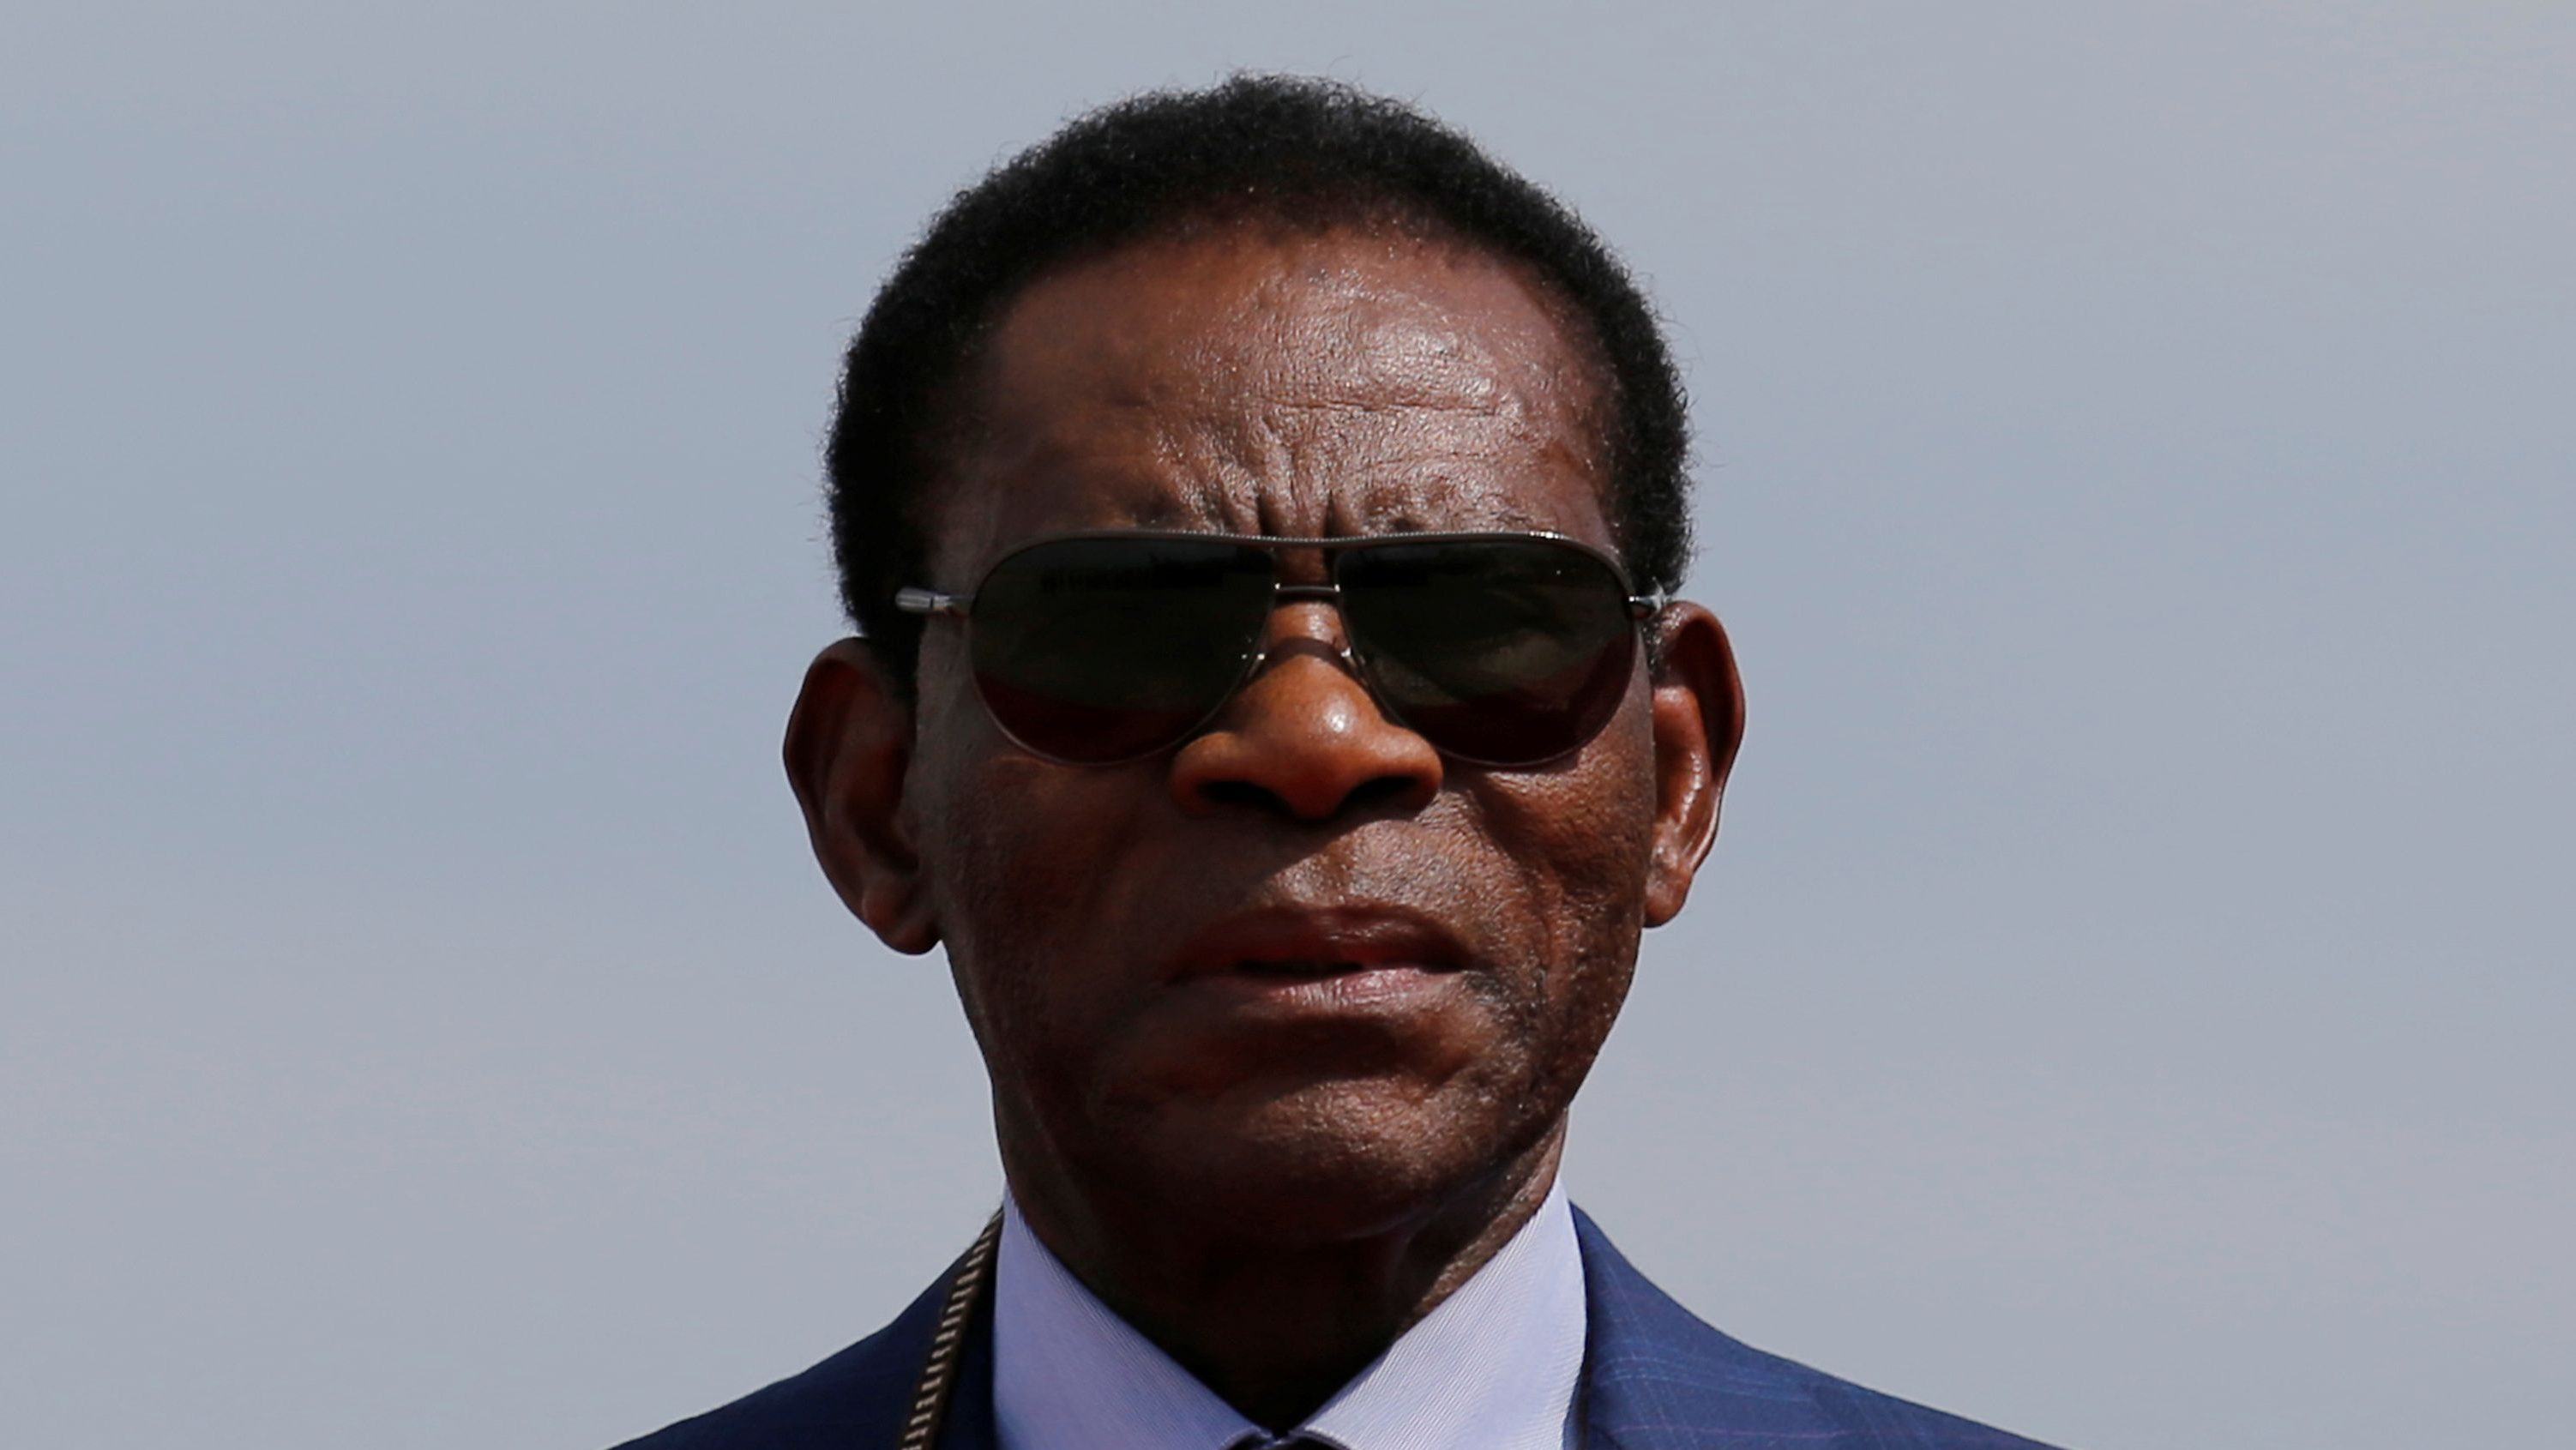 Equatorial Guinean President Teodoro Obiang Nguema Mbasogo is seen at his arrival to the Viru Viru airport, ahead of his attendance at the Gas Exporting Countries Forum Summit, in Santa Cruz, Bolivia, November 22, 2017.